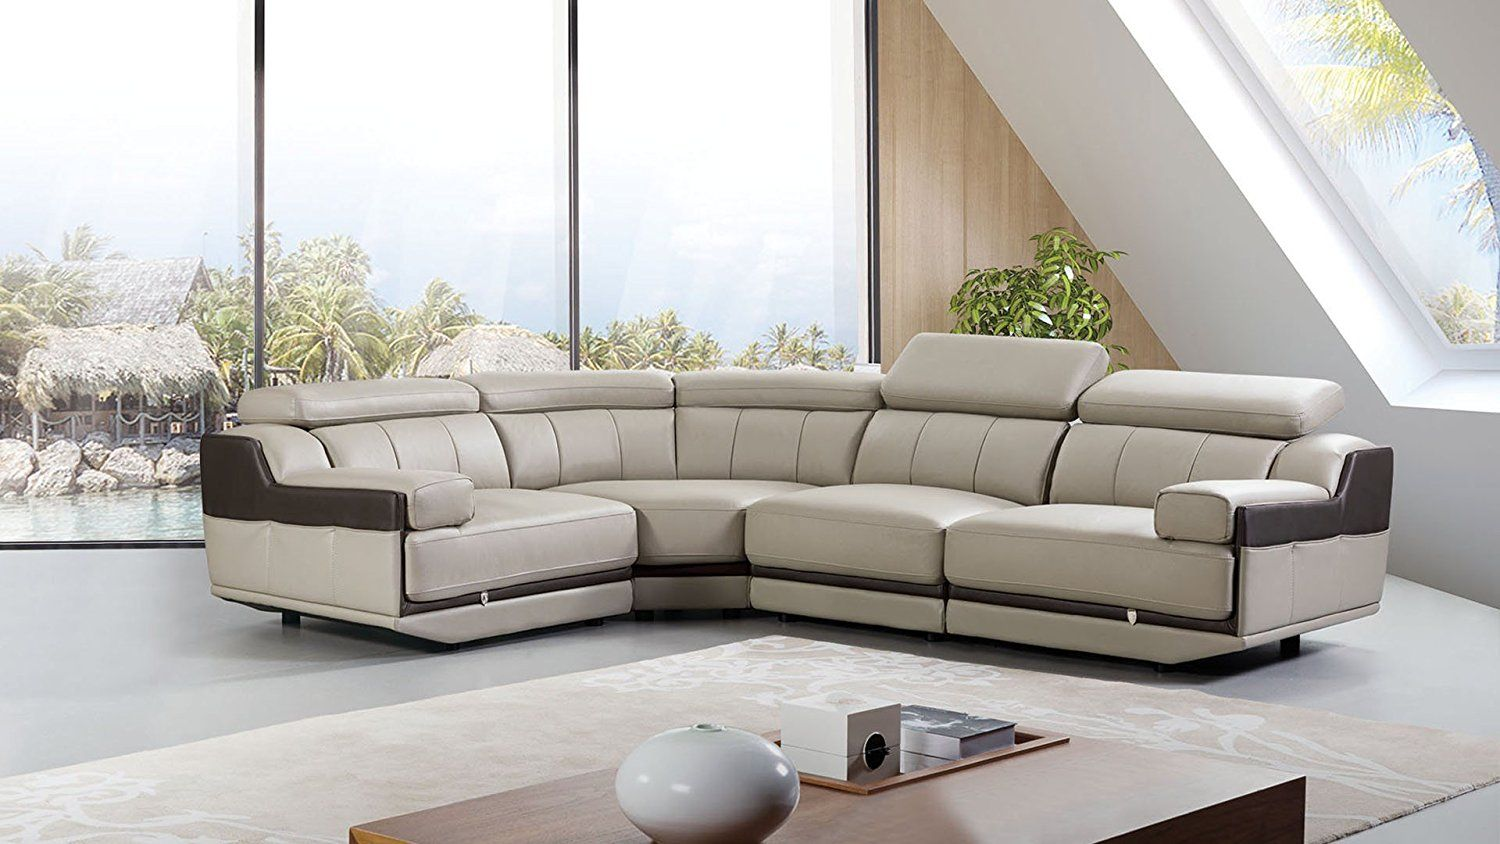 20 Awesome Curved Leather Sectional Sofa Leather Sectional Sofas